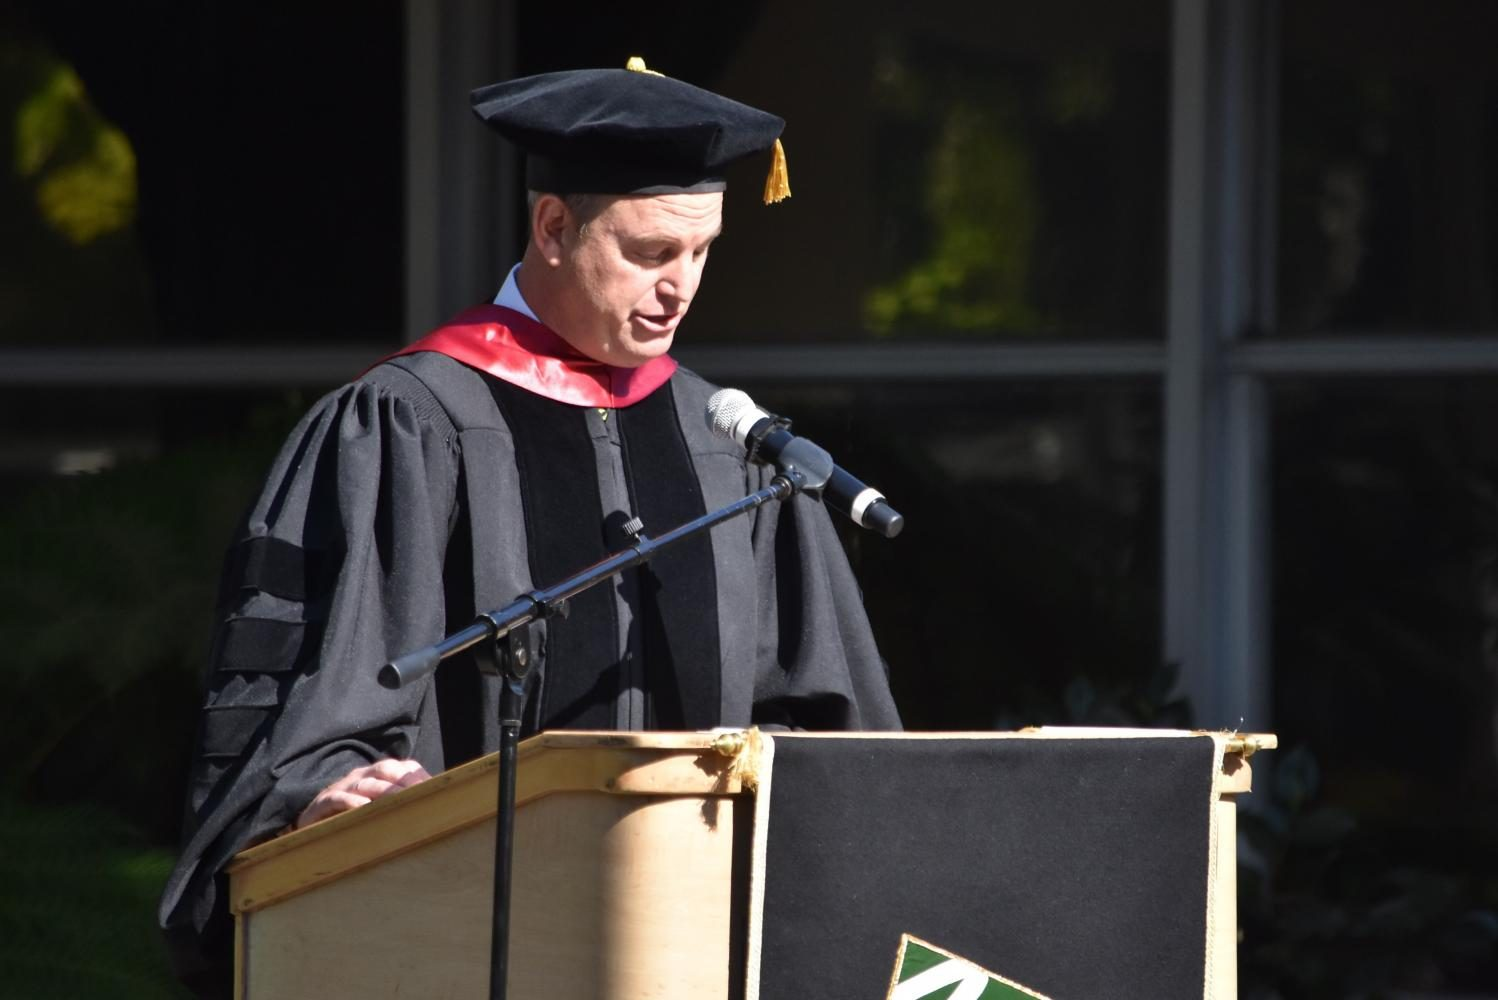 Head+of+School+Brian+Yager+delivers+his+opening+comments+at+this+years+Matriculation.+Before+his+remarks%2C+the+upper+school+faculty+and+the+Class+of+2021+participated+in+processionals+into+the+quad.